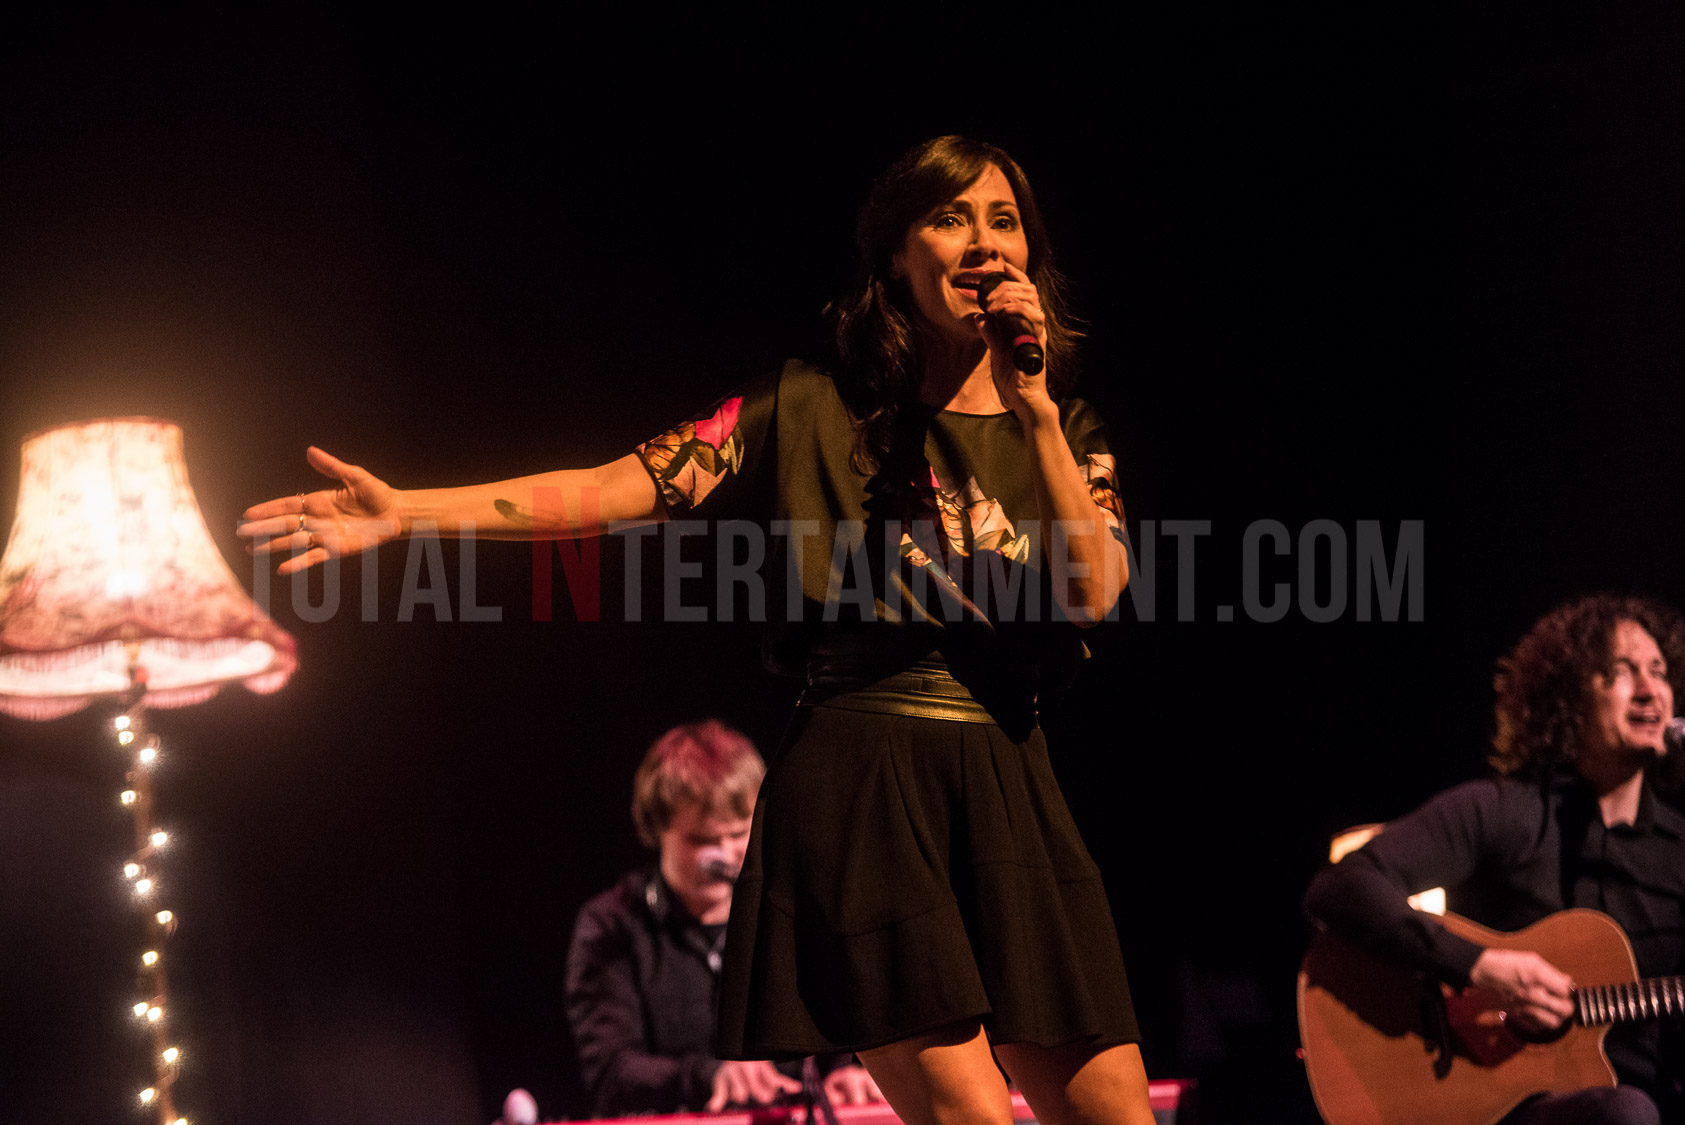 Concert, Live Event, Liverpool, Natalie Imbruglia, Graham Finney, totalntertainment